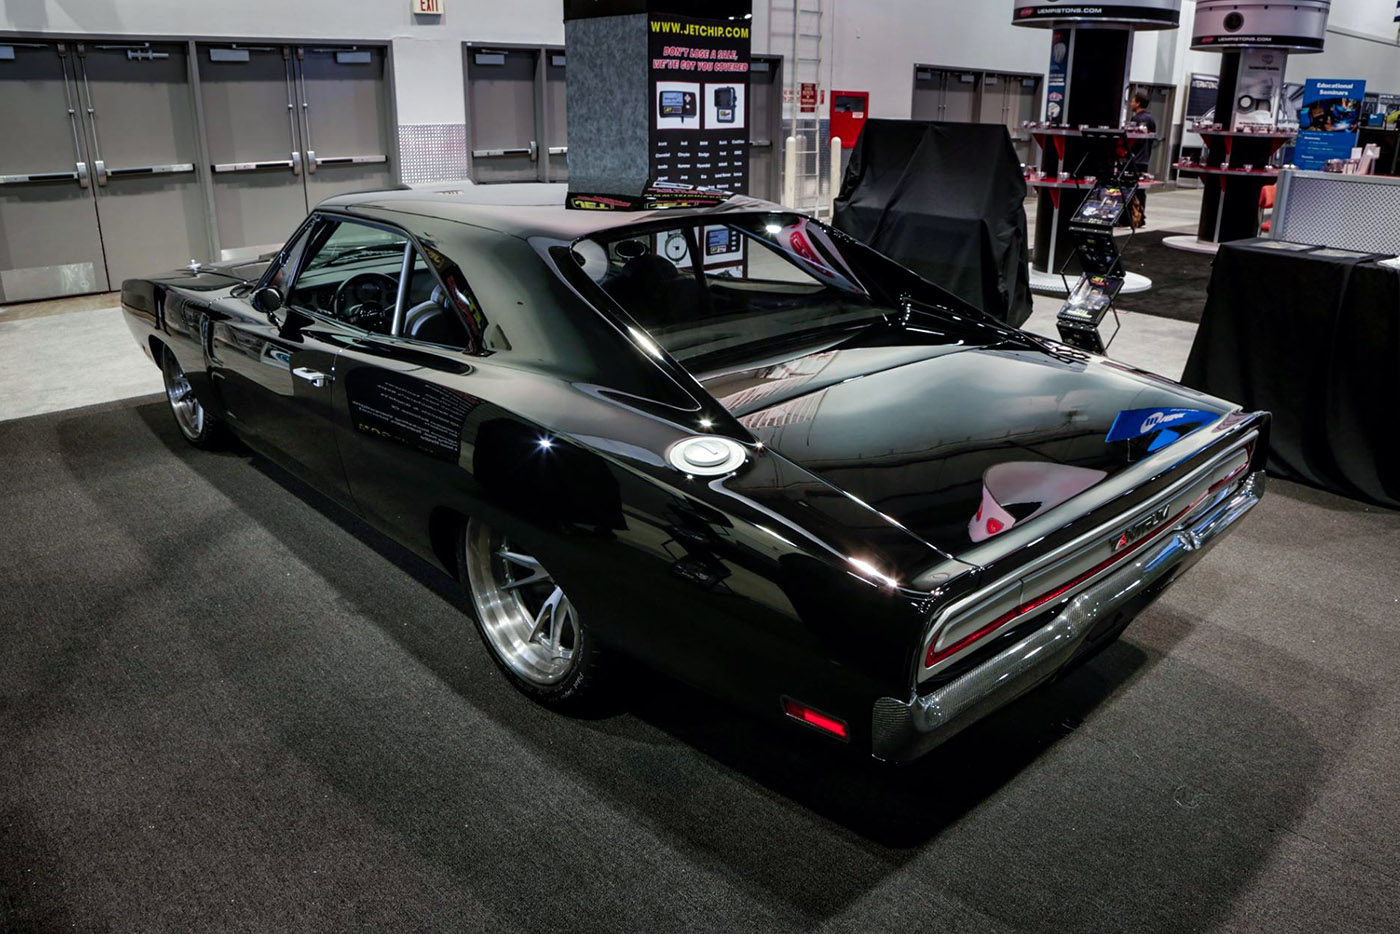 Dodge dodge charger rt horsepower : 1970 Dodge Charger with a 1650 HP Mercury Racing Engine – Engine ...